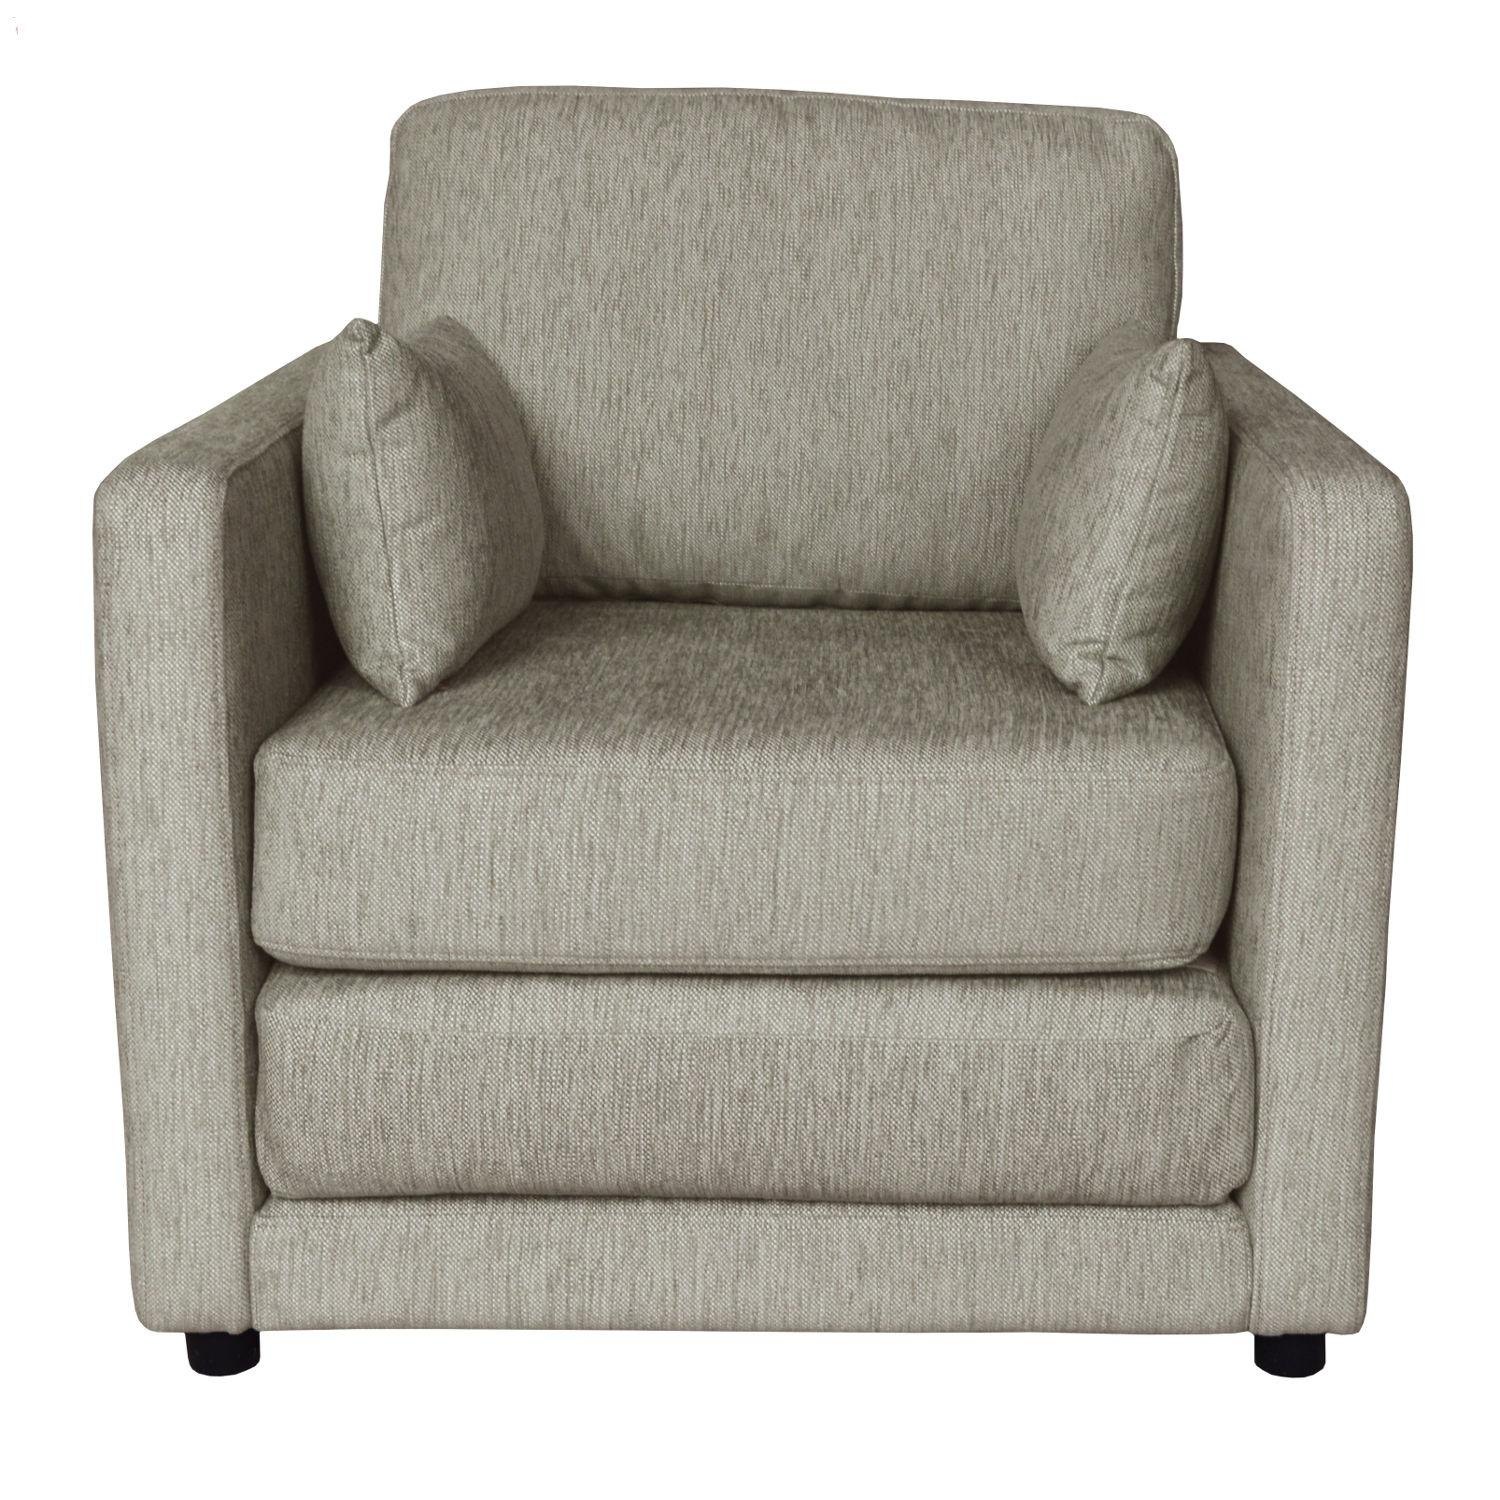 Chair Milly Grey Print Barrel Chair Armchair Accent Home Furniture Intended For Small Sofas And Chairs (Image 4 of 20)